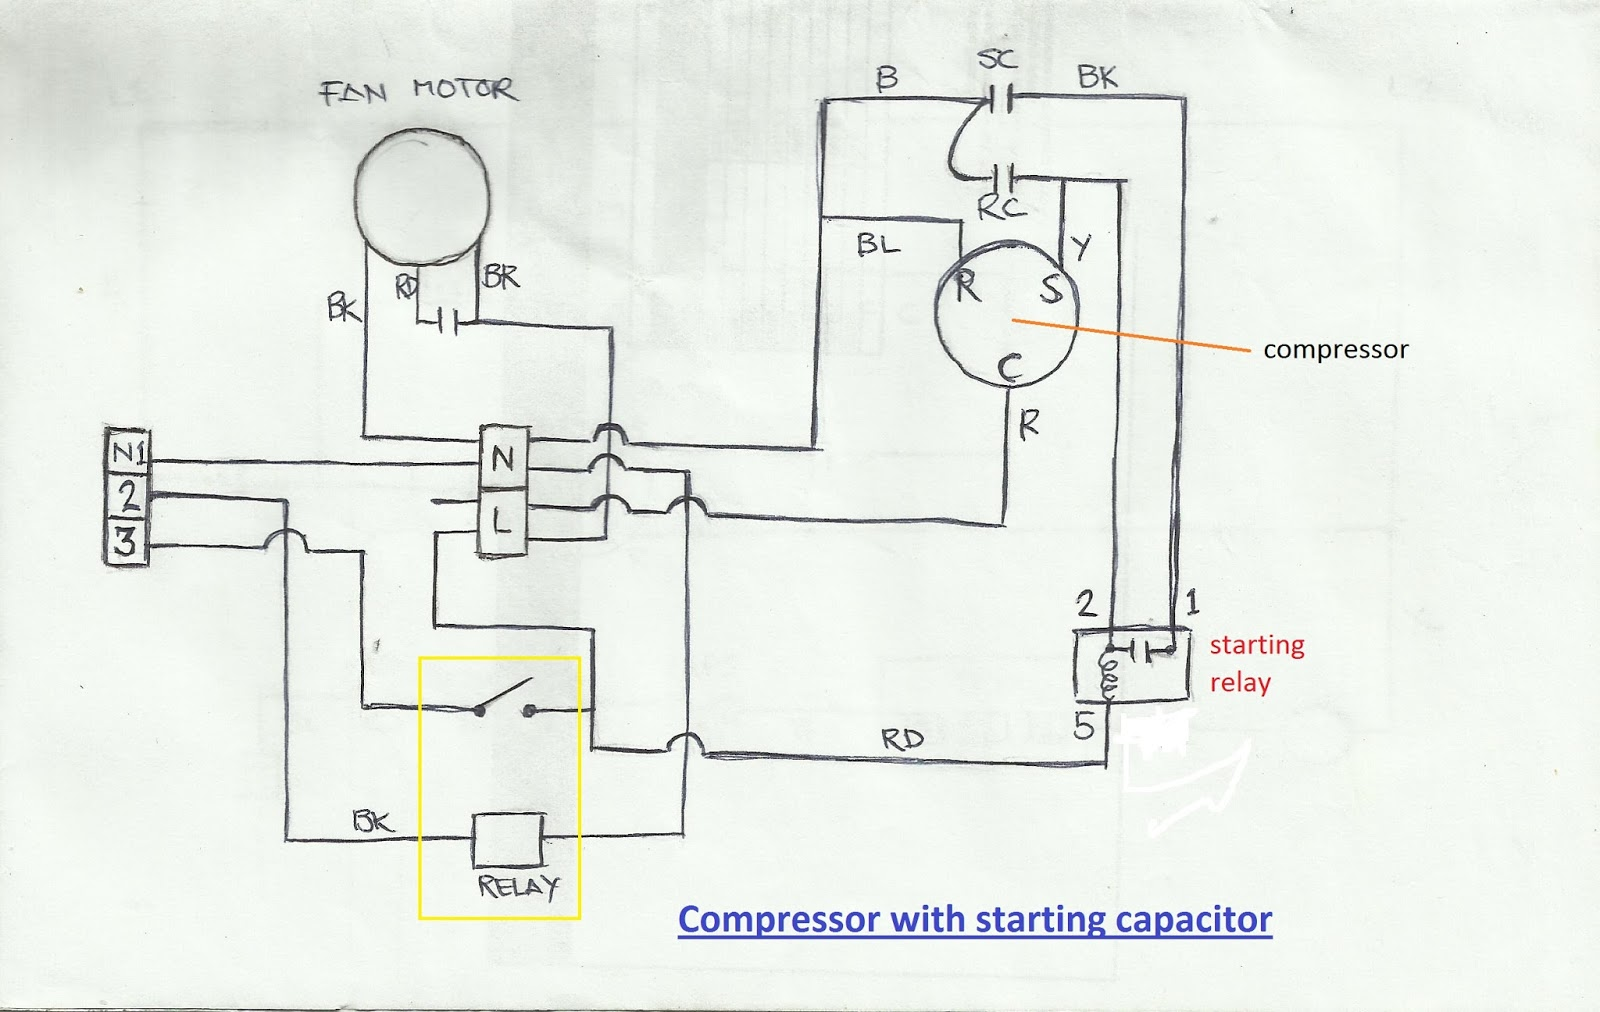 18 refrigeration and air conditioning repair wiring diagram of electrical circuit diagram of air conditioner at alyssarenee.co